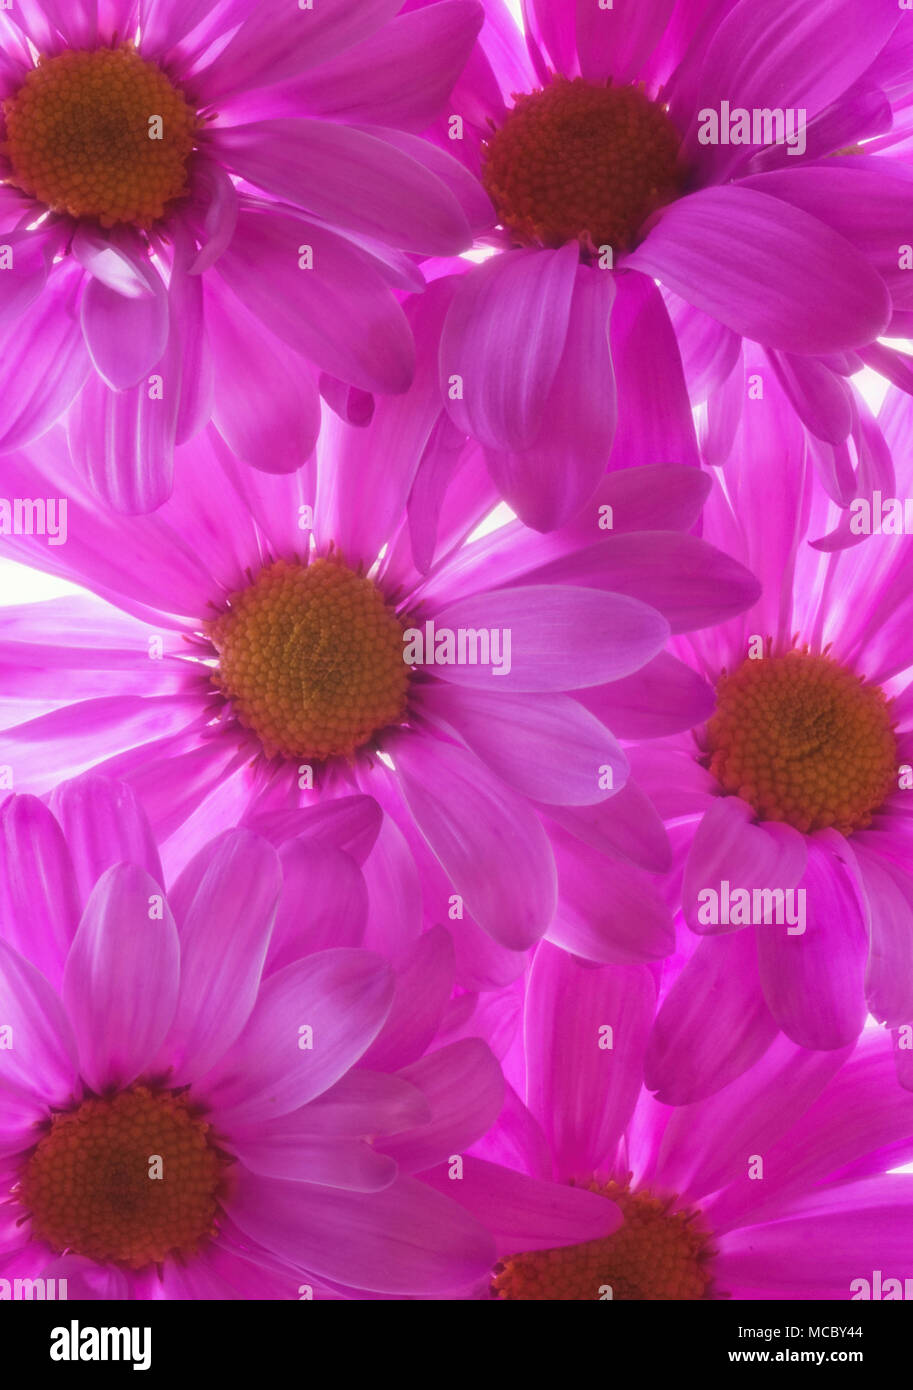 Close up looking down on backlit purple pink Mums - Stock Image